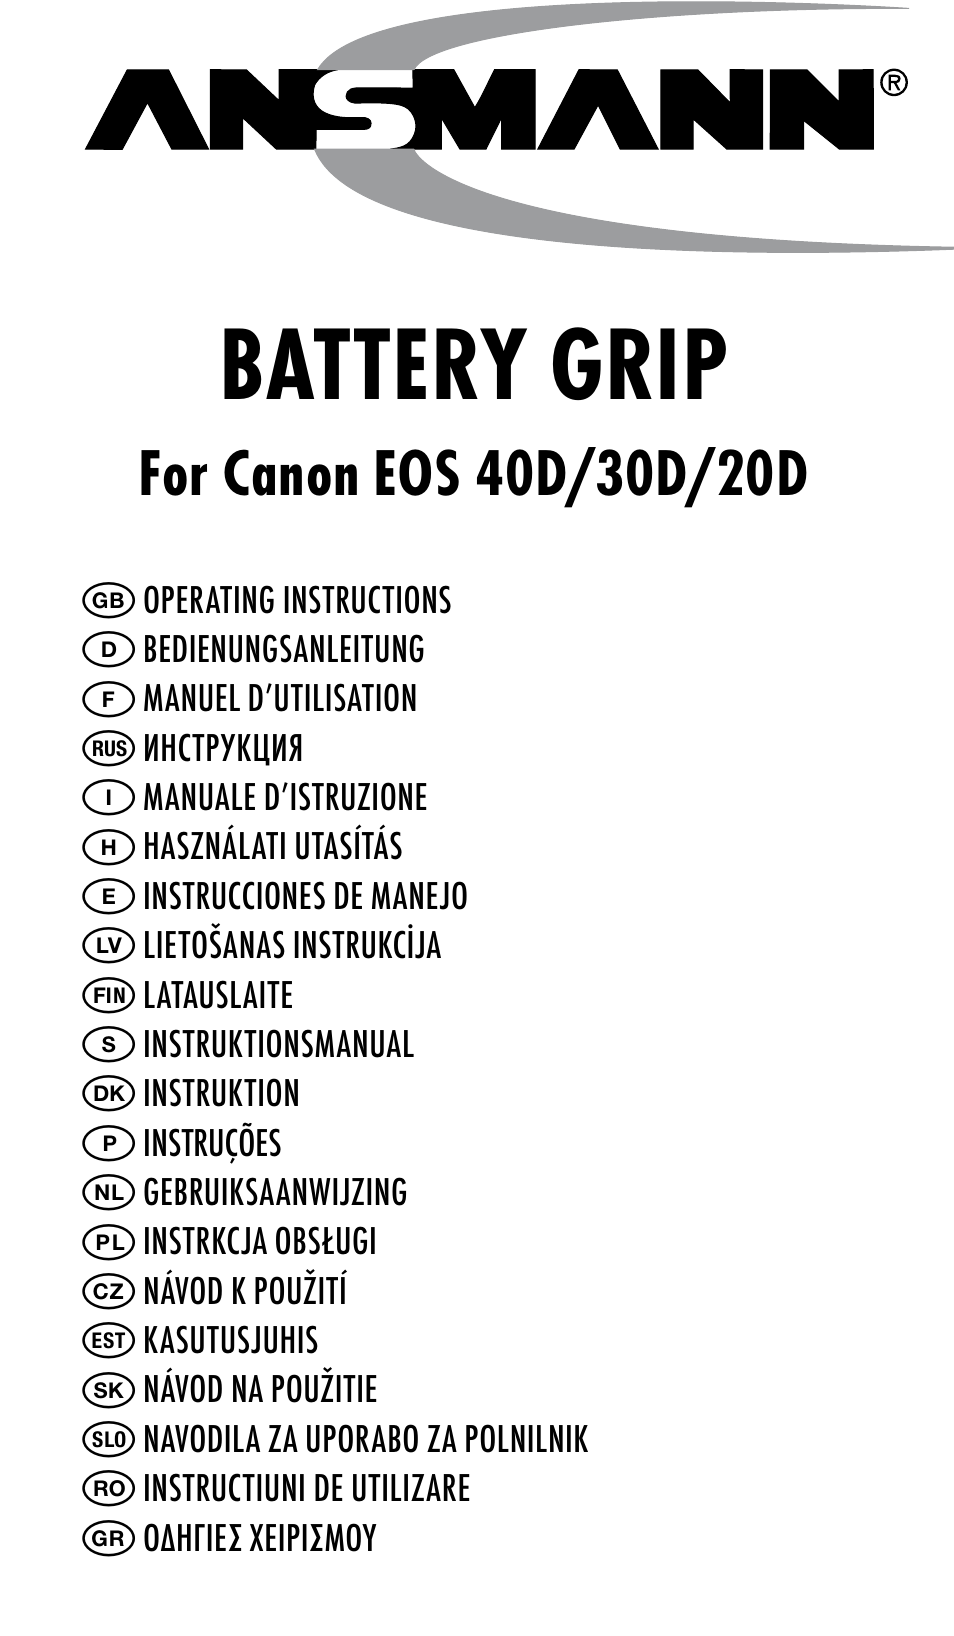 Ansmann Energy CANON EOS 20D User Manual | 24 pages | Also for: CANON EOS  30D, CANON EOS 40D